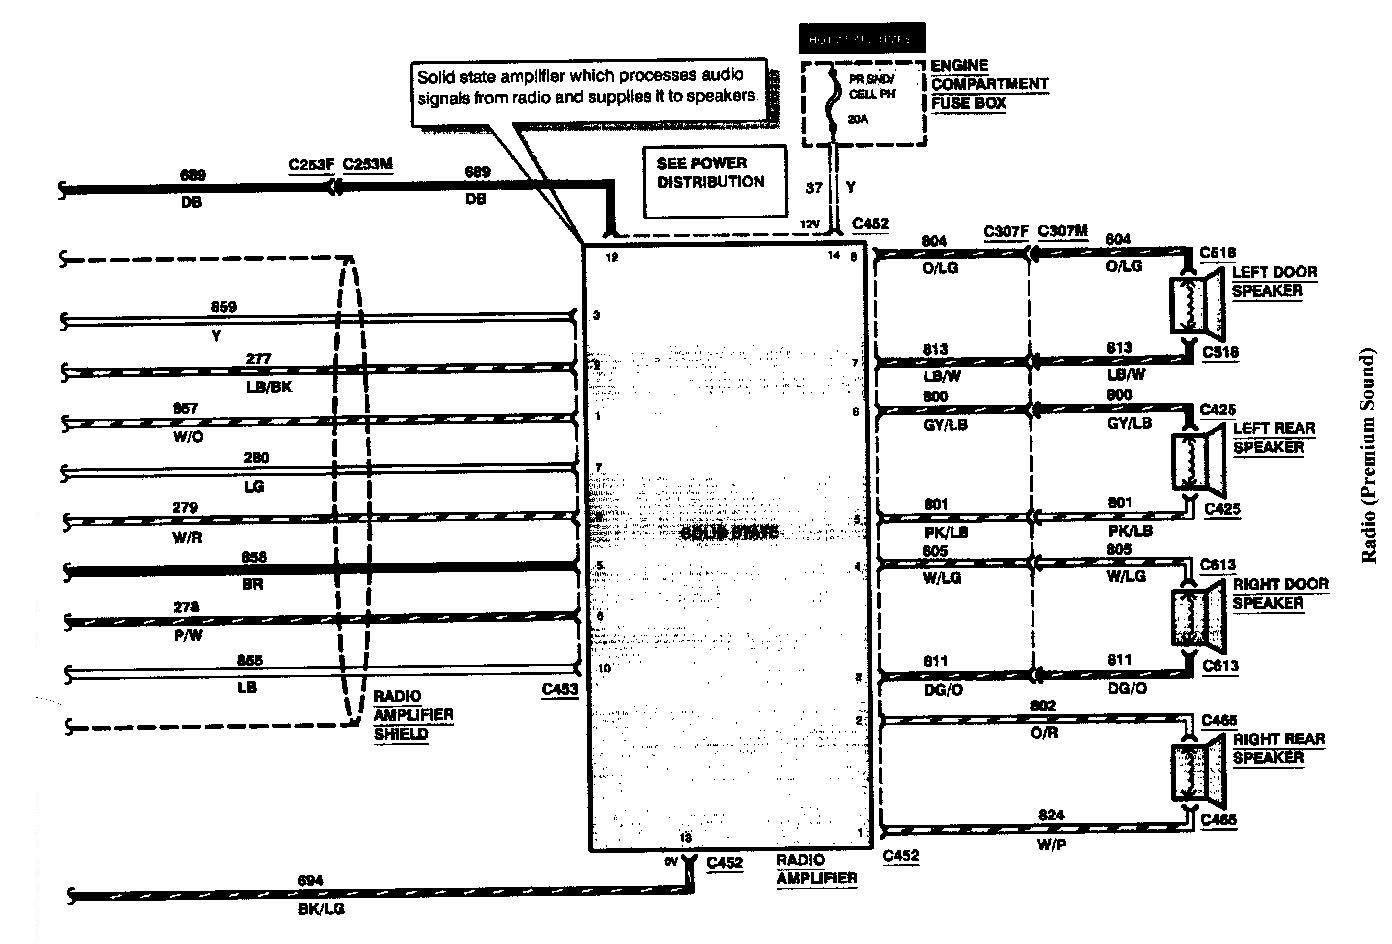 95Mark8 Premium Sound Wiring2 95 mark 8 jbl wiring diagram needed lincolns online message forum 1999 Lincoln Town Car Wiring Diagram at mifinder.co